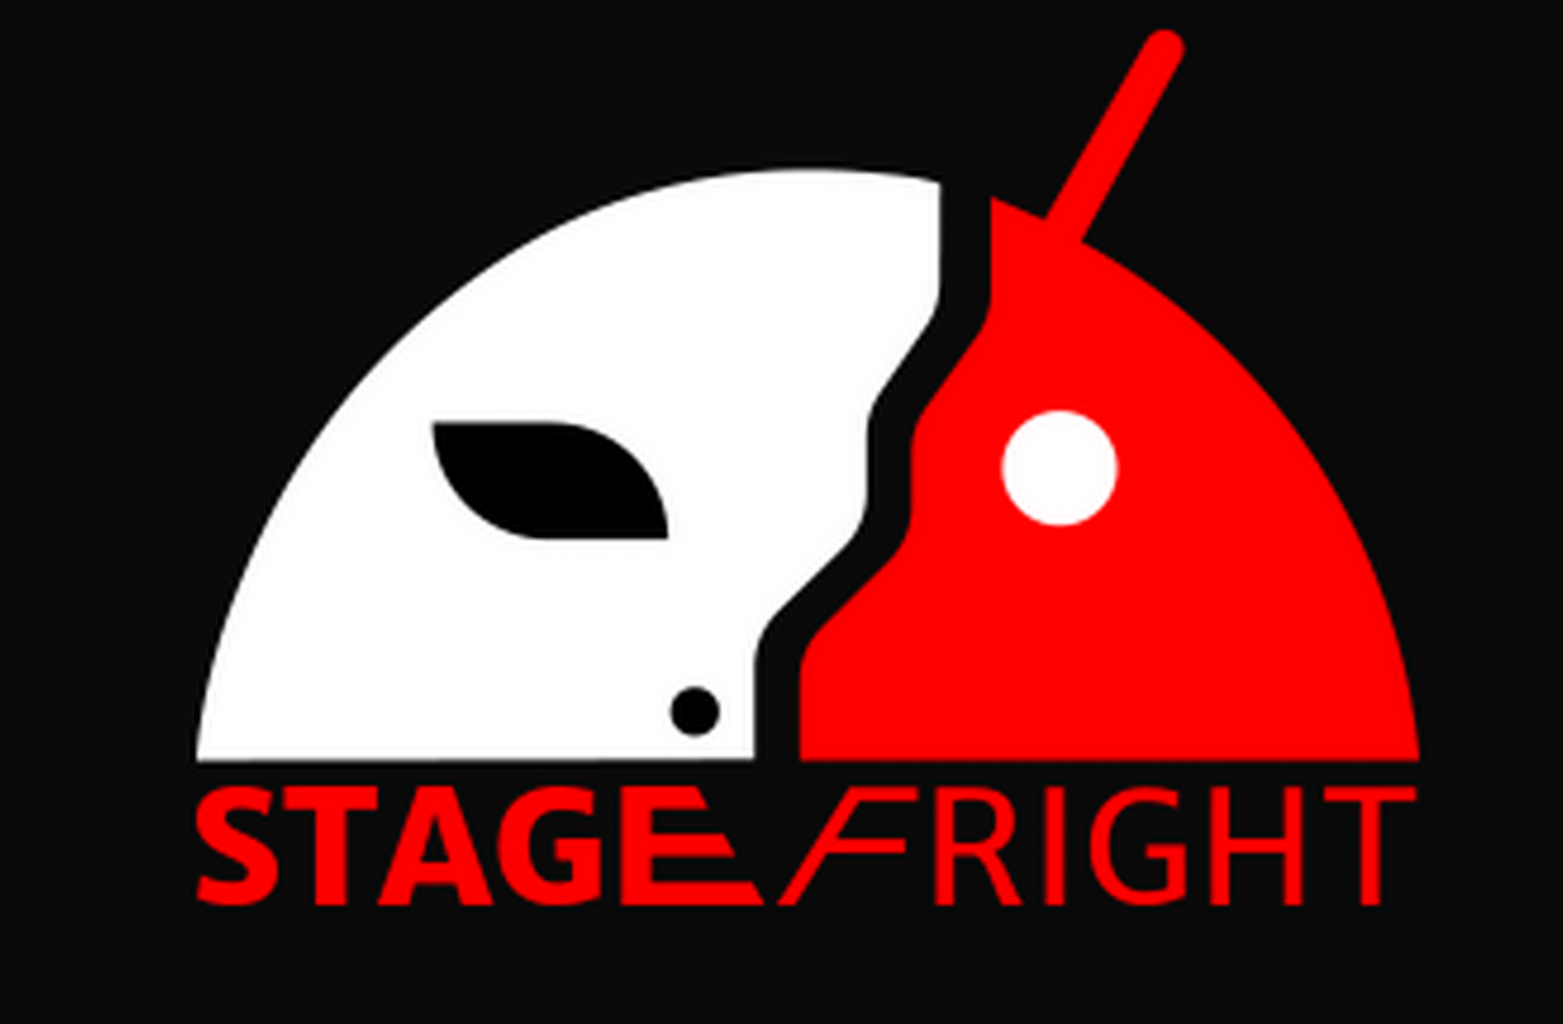 Android Security | Stagefright